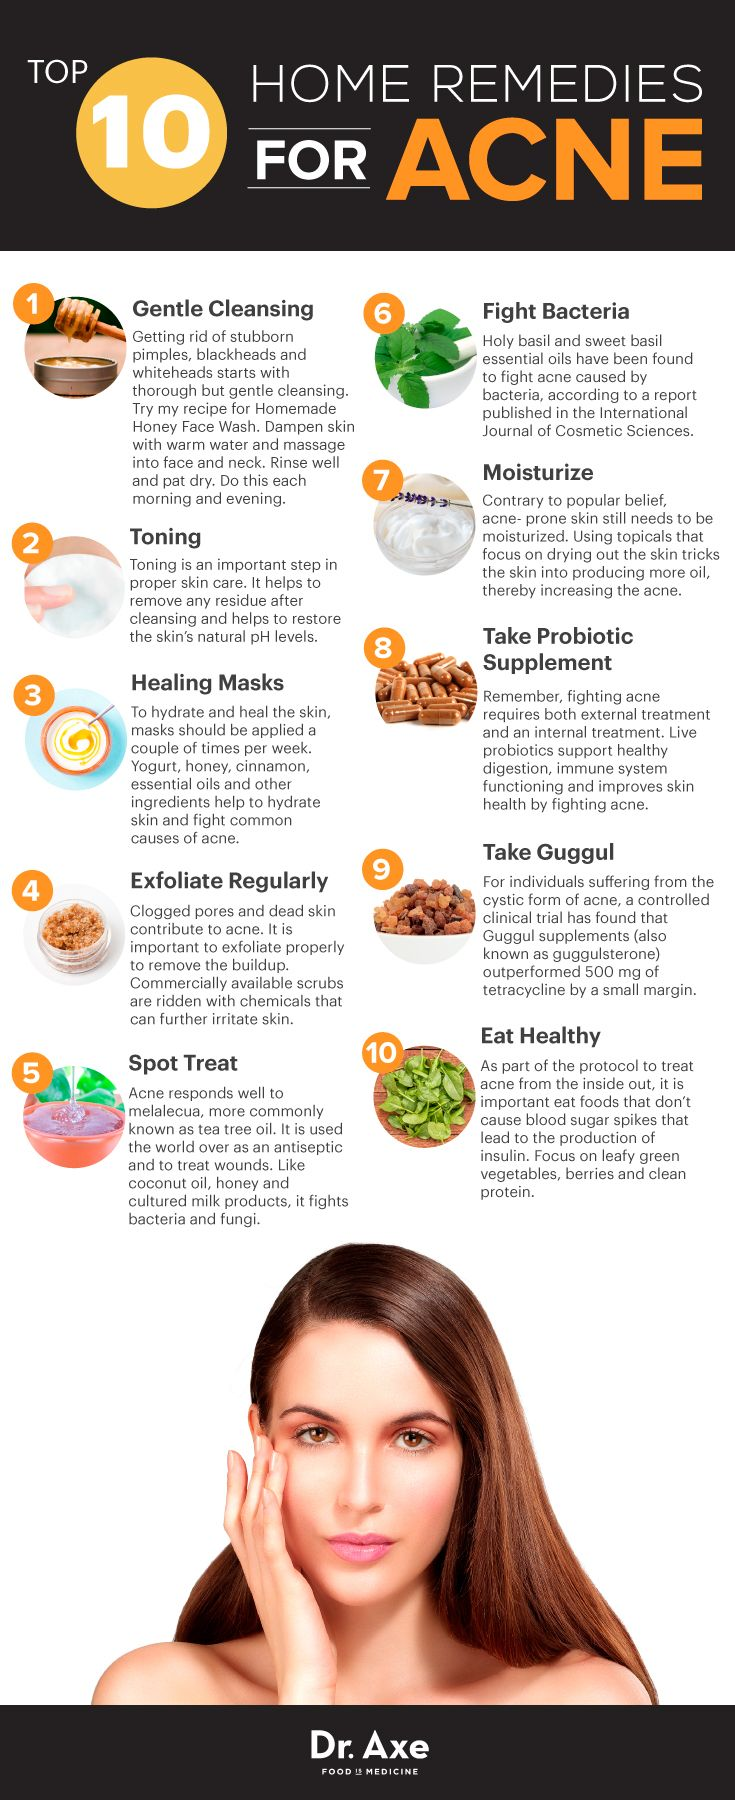 Acne home remedies http://www.draxe.com #health #Holistic #natural